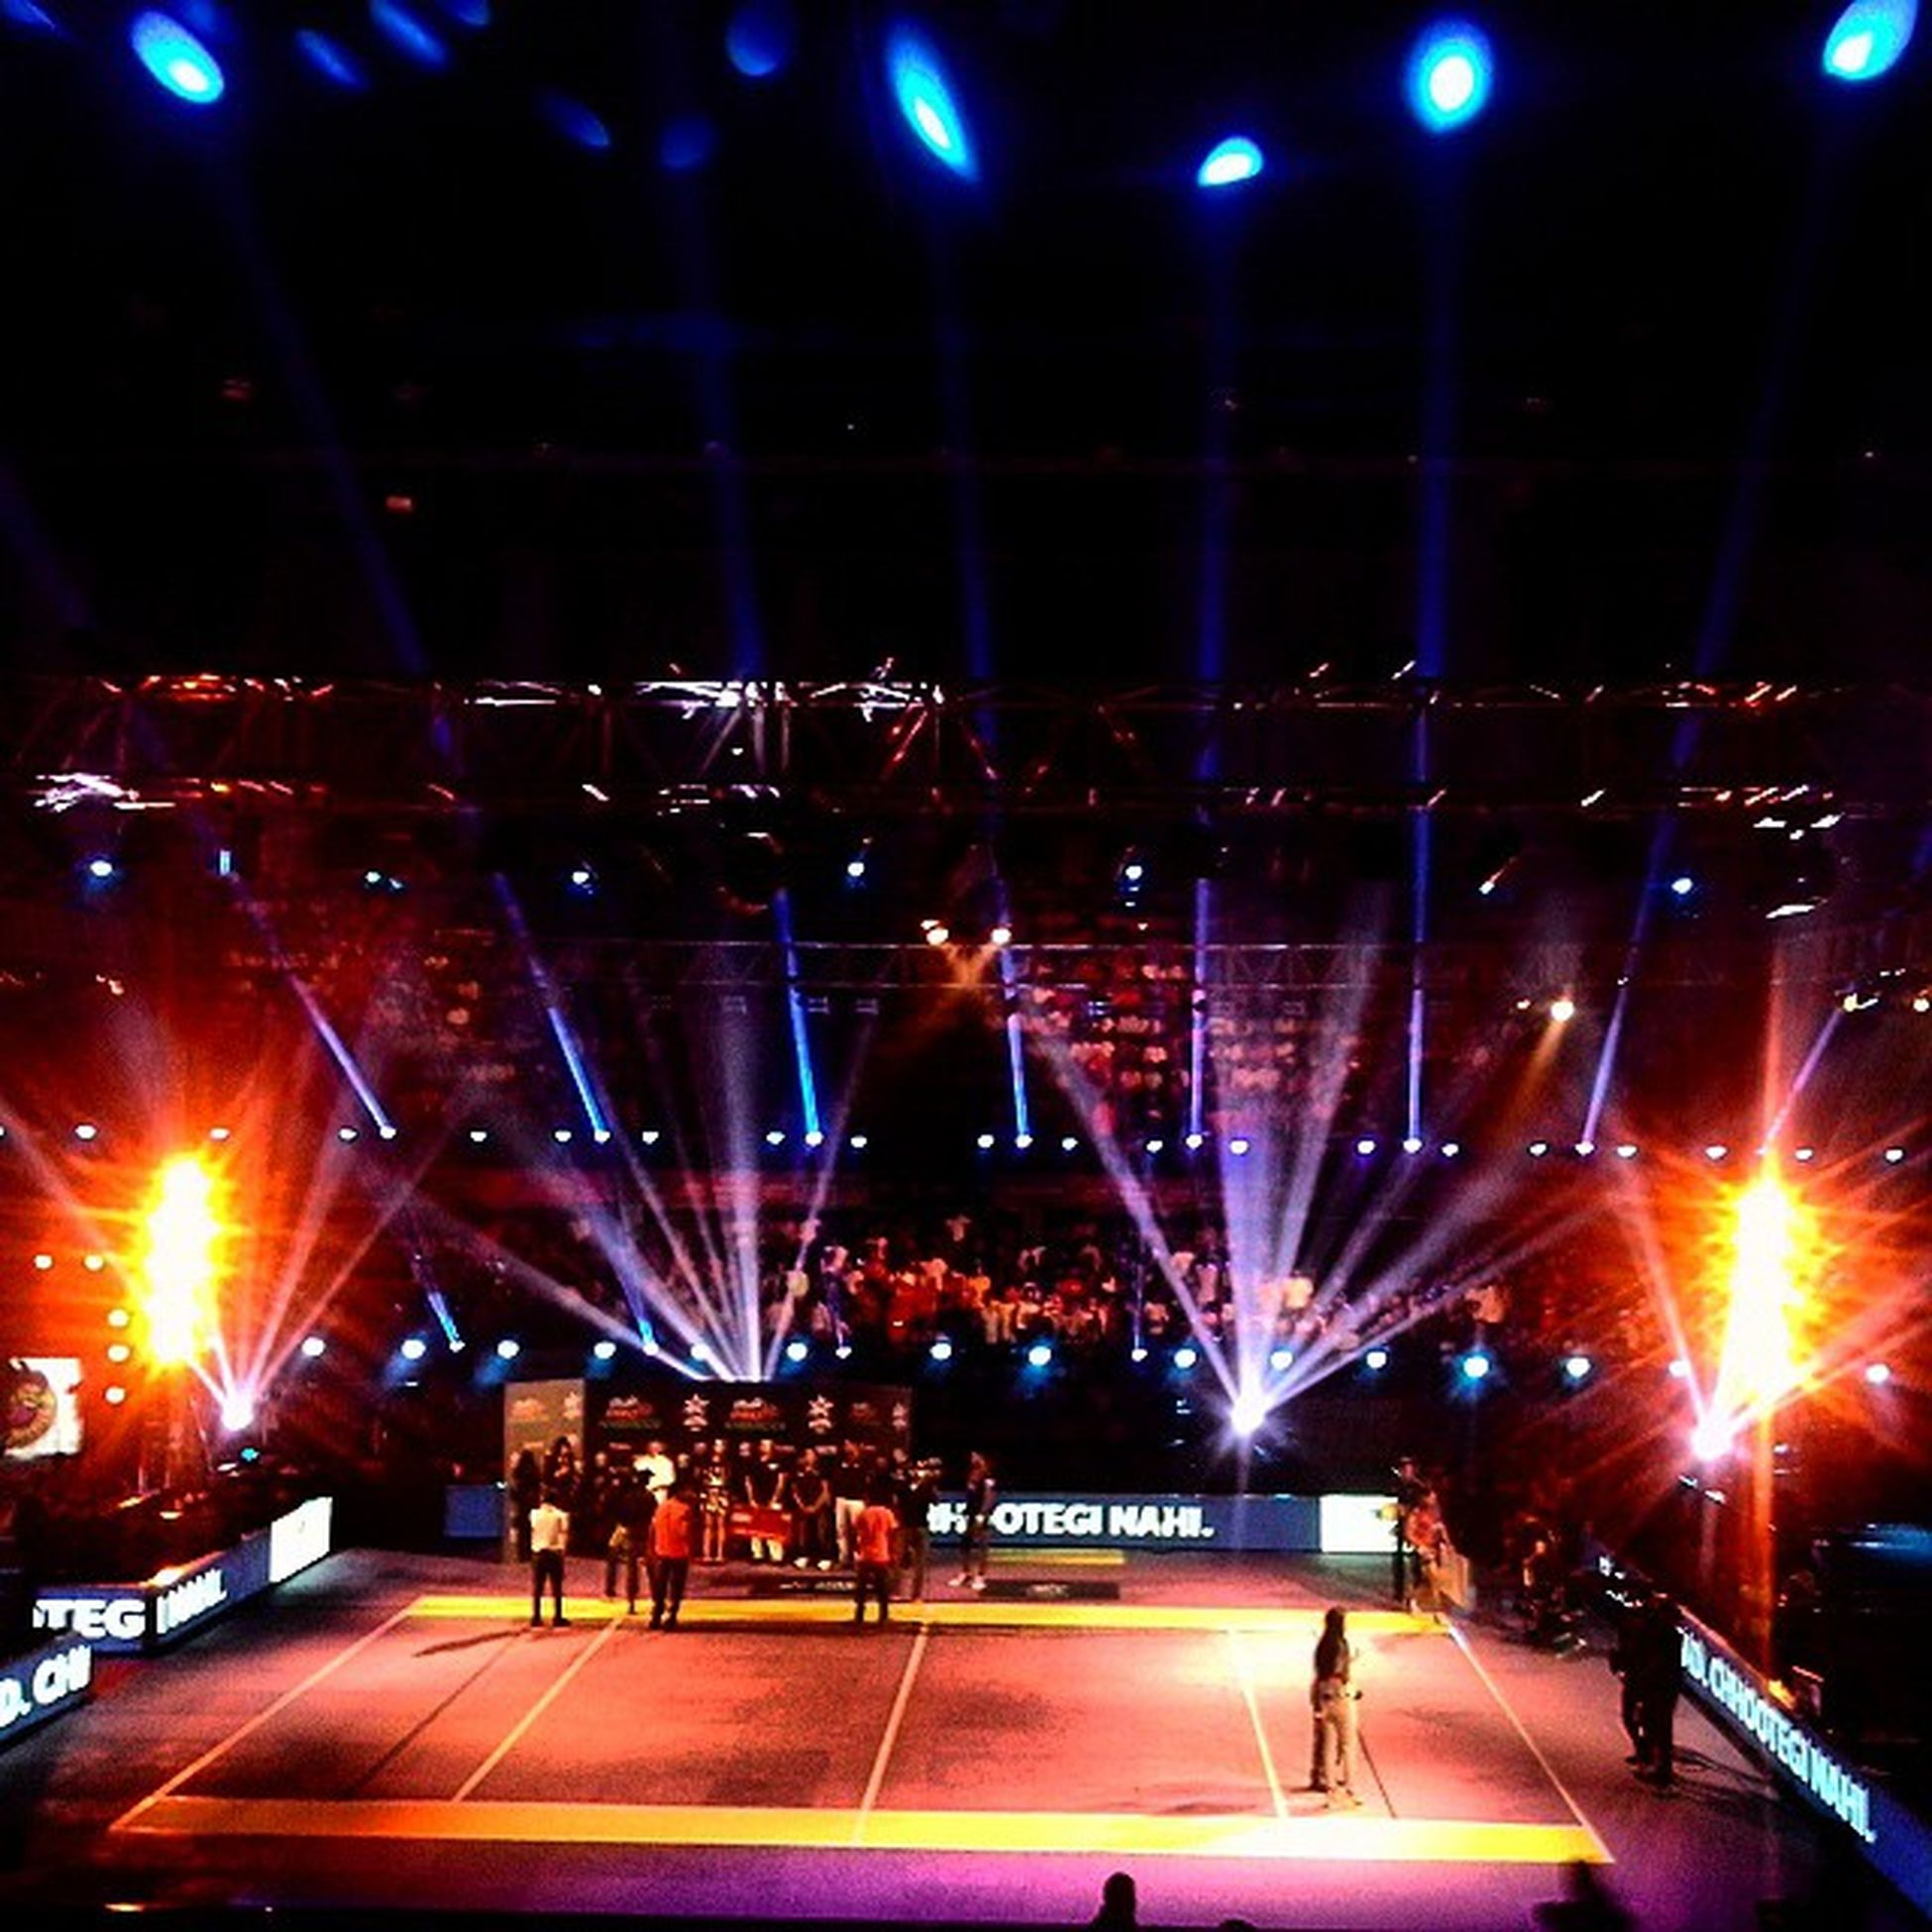 Spectacular Lighting inside the Kanteerava IndoorStadium at Bangalore hosting StarSports ProKabaddiLeague